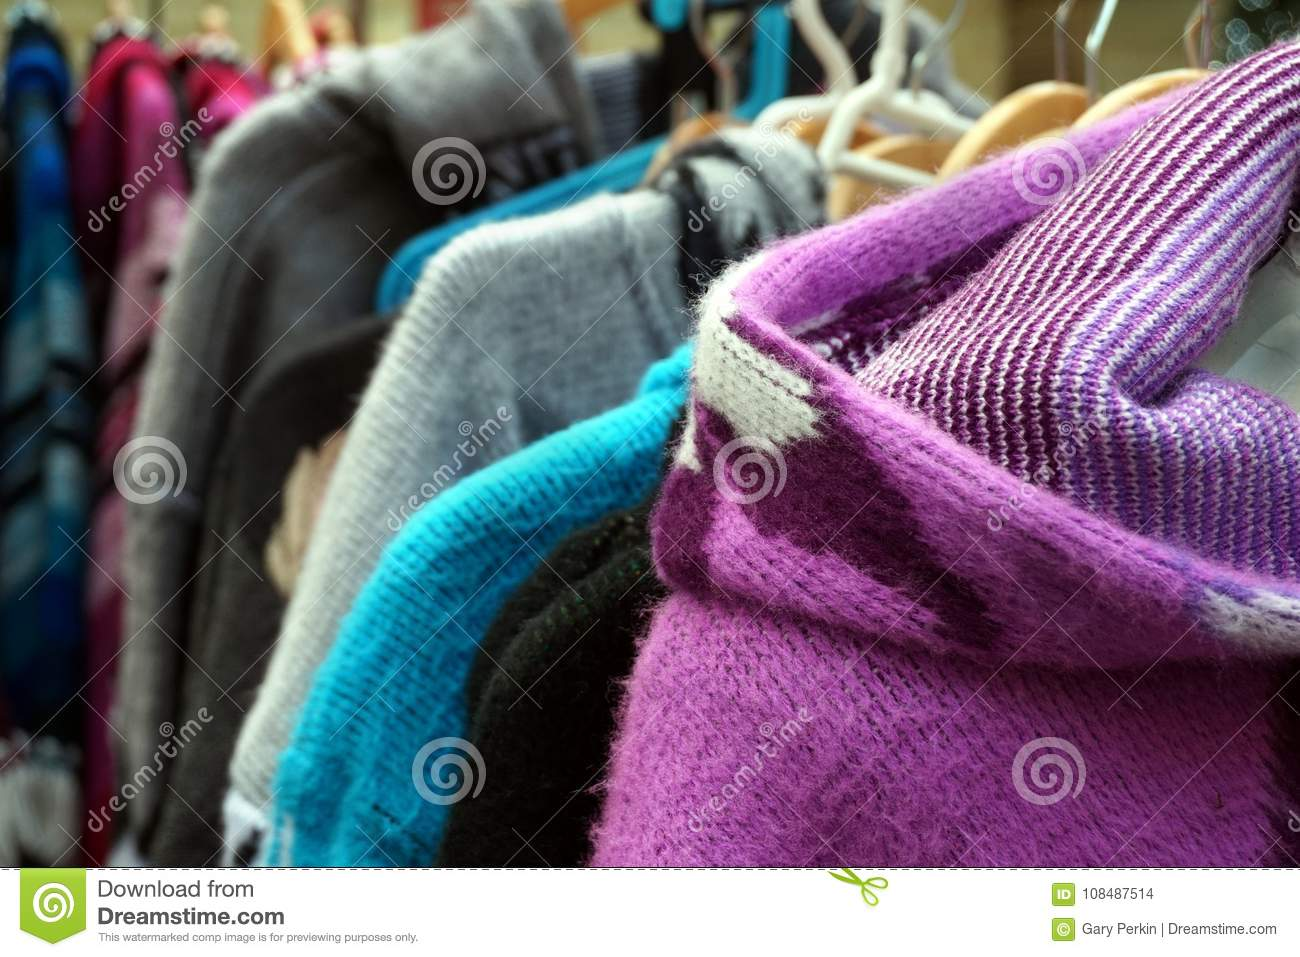 Traditional multi colored woolen knitwear clothes for sale on a market stall